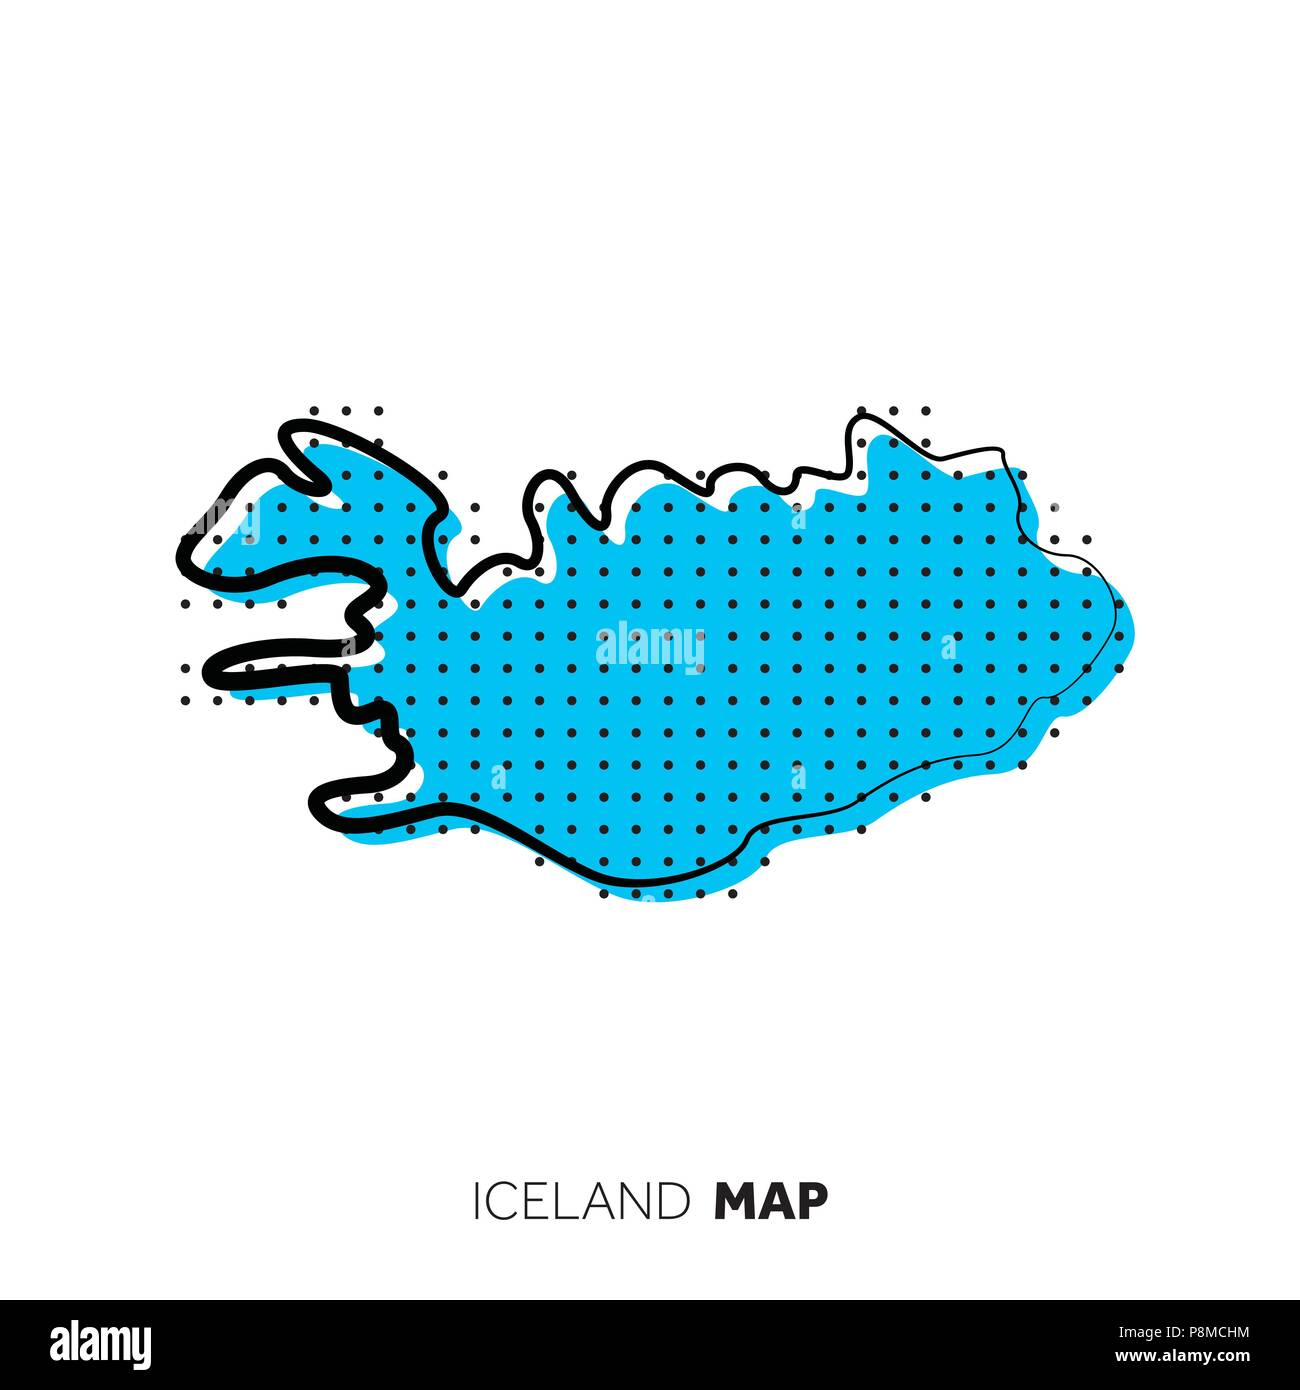 Iceland vector country map. Map outline with dots Stock Vector Art ...